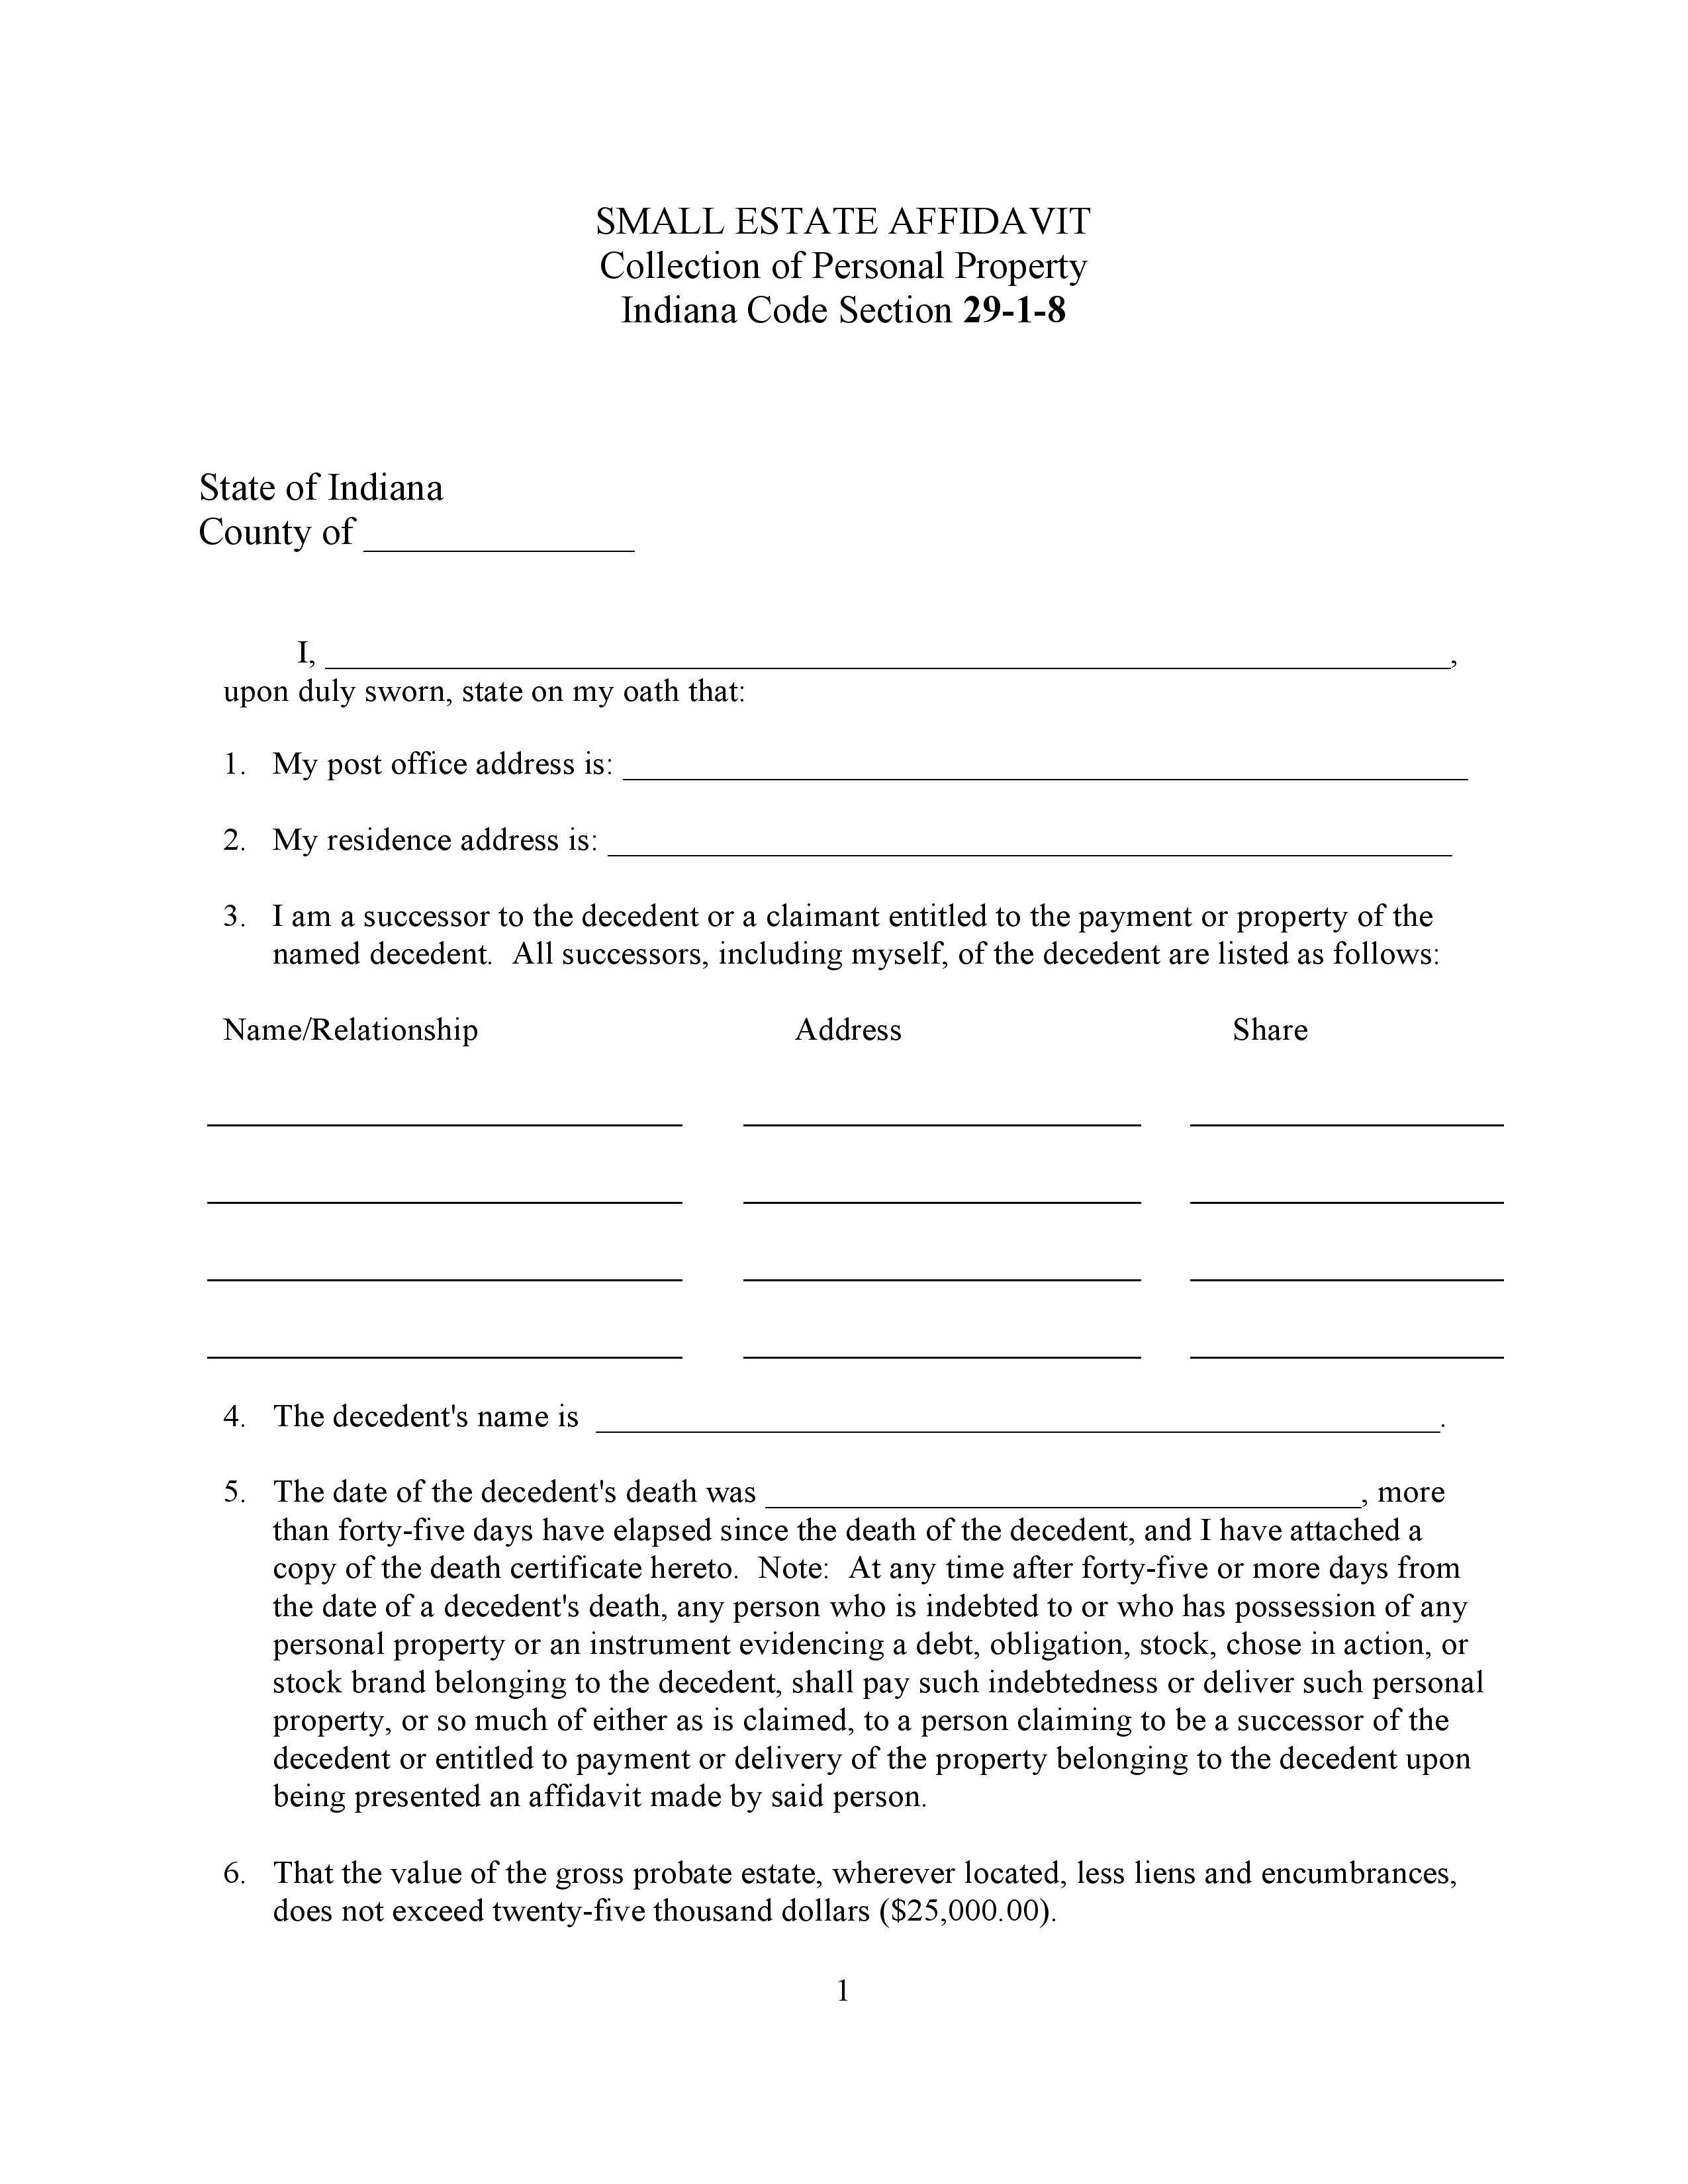 Free Indiana Small Estate Affidavit Form | PDF | Word | Do It Yourself Forms  Name Affidavit Form